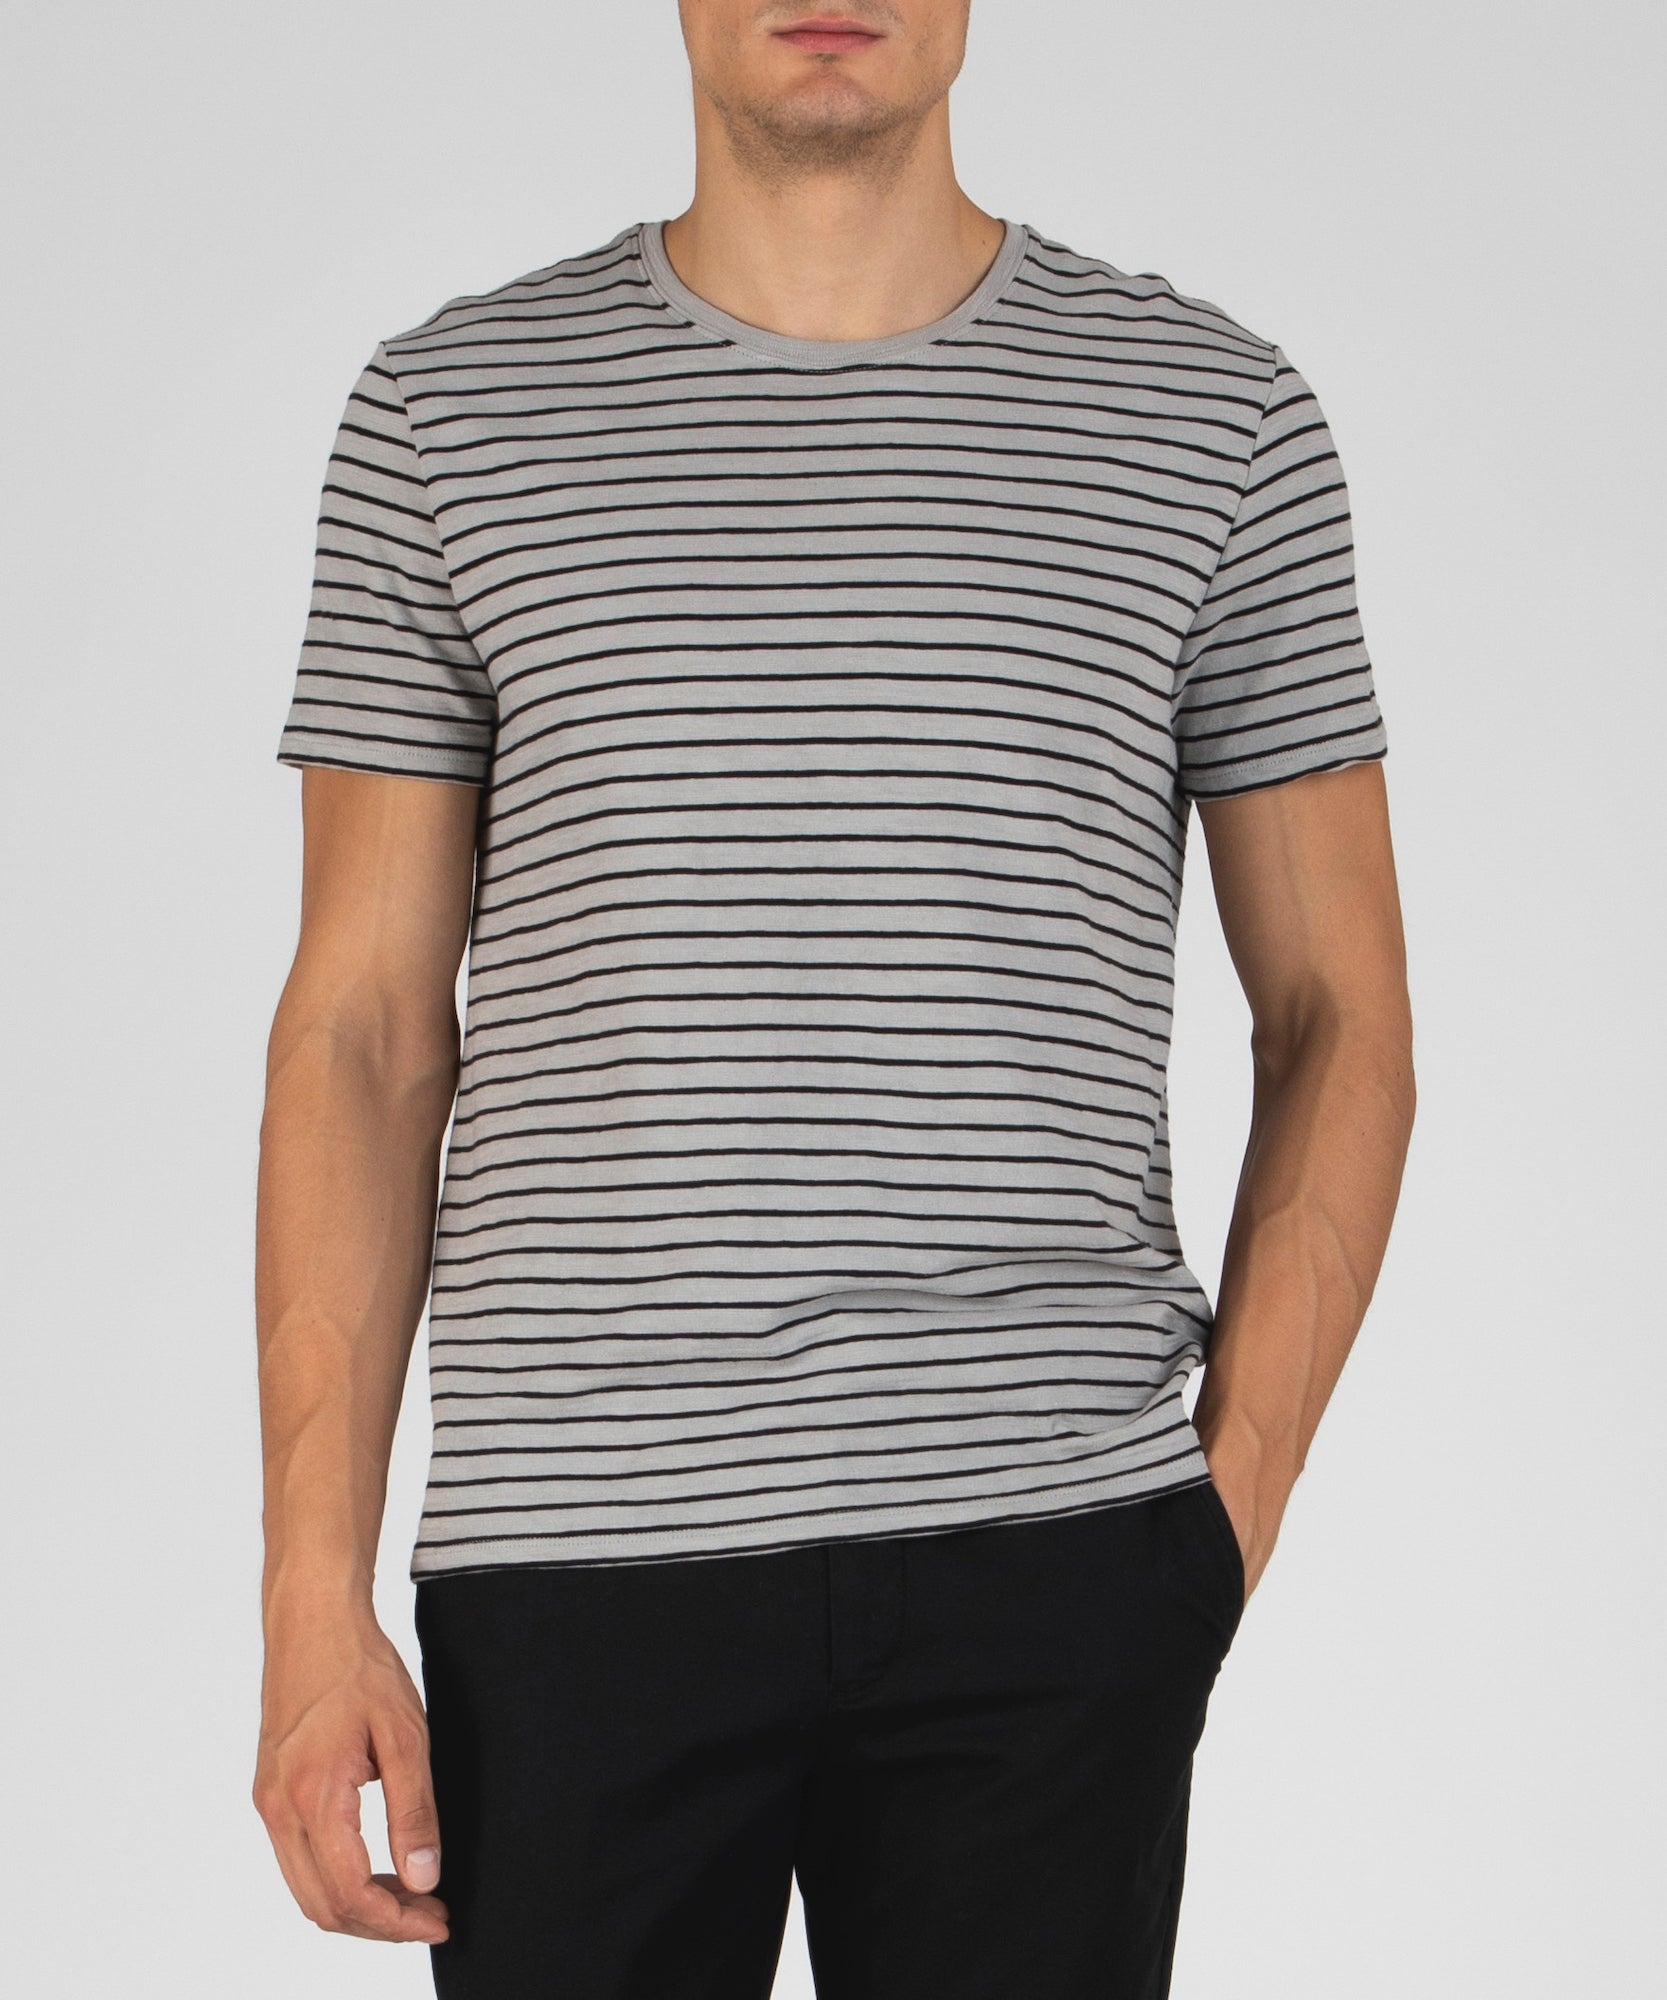 Grey and Black Striped Jersey Crew Neck Tee - Men's Cotton Short Sleeve Tee by ATM Anthony Thomas Melillo